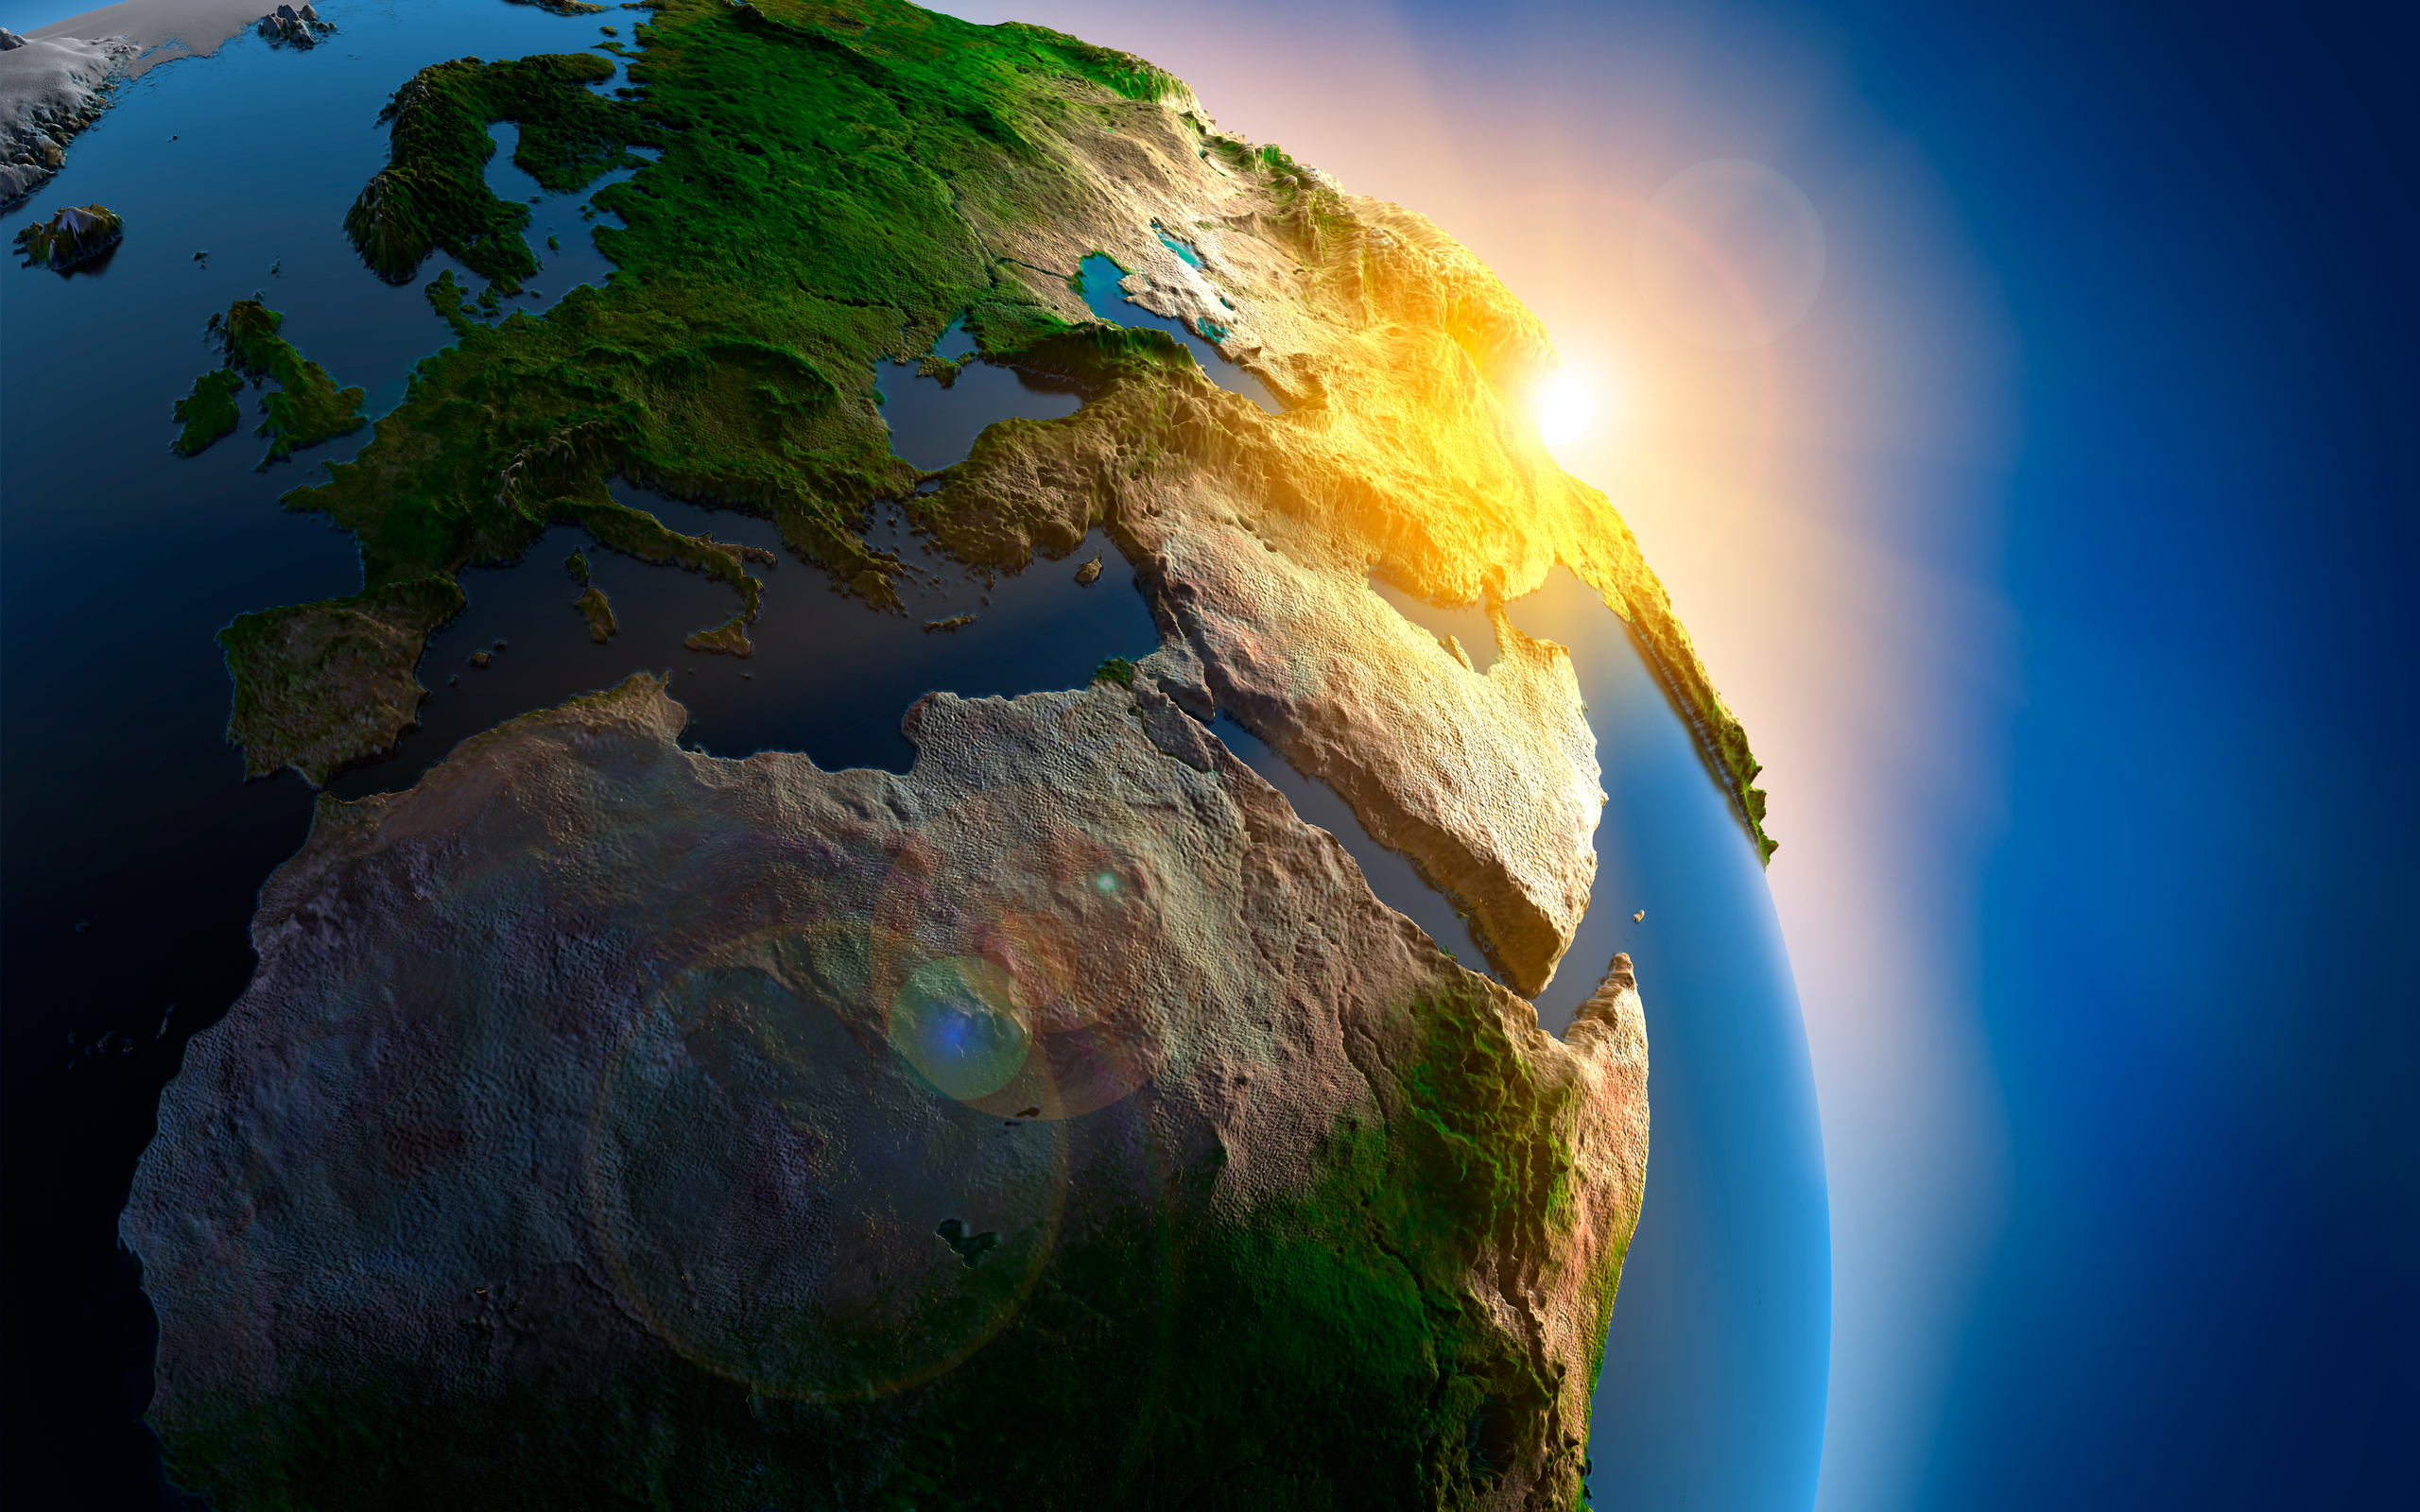 Uncovering The Formation And Extinction Of Life On Earth